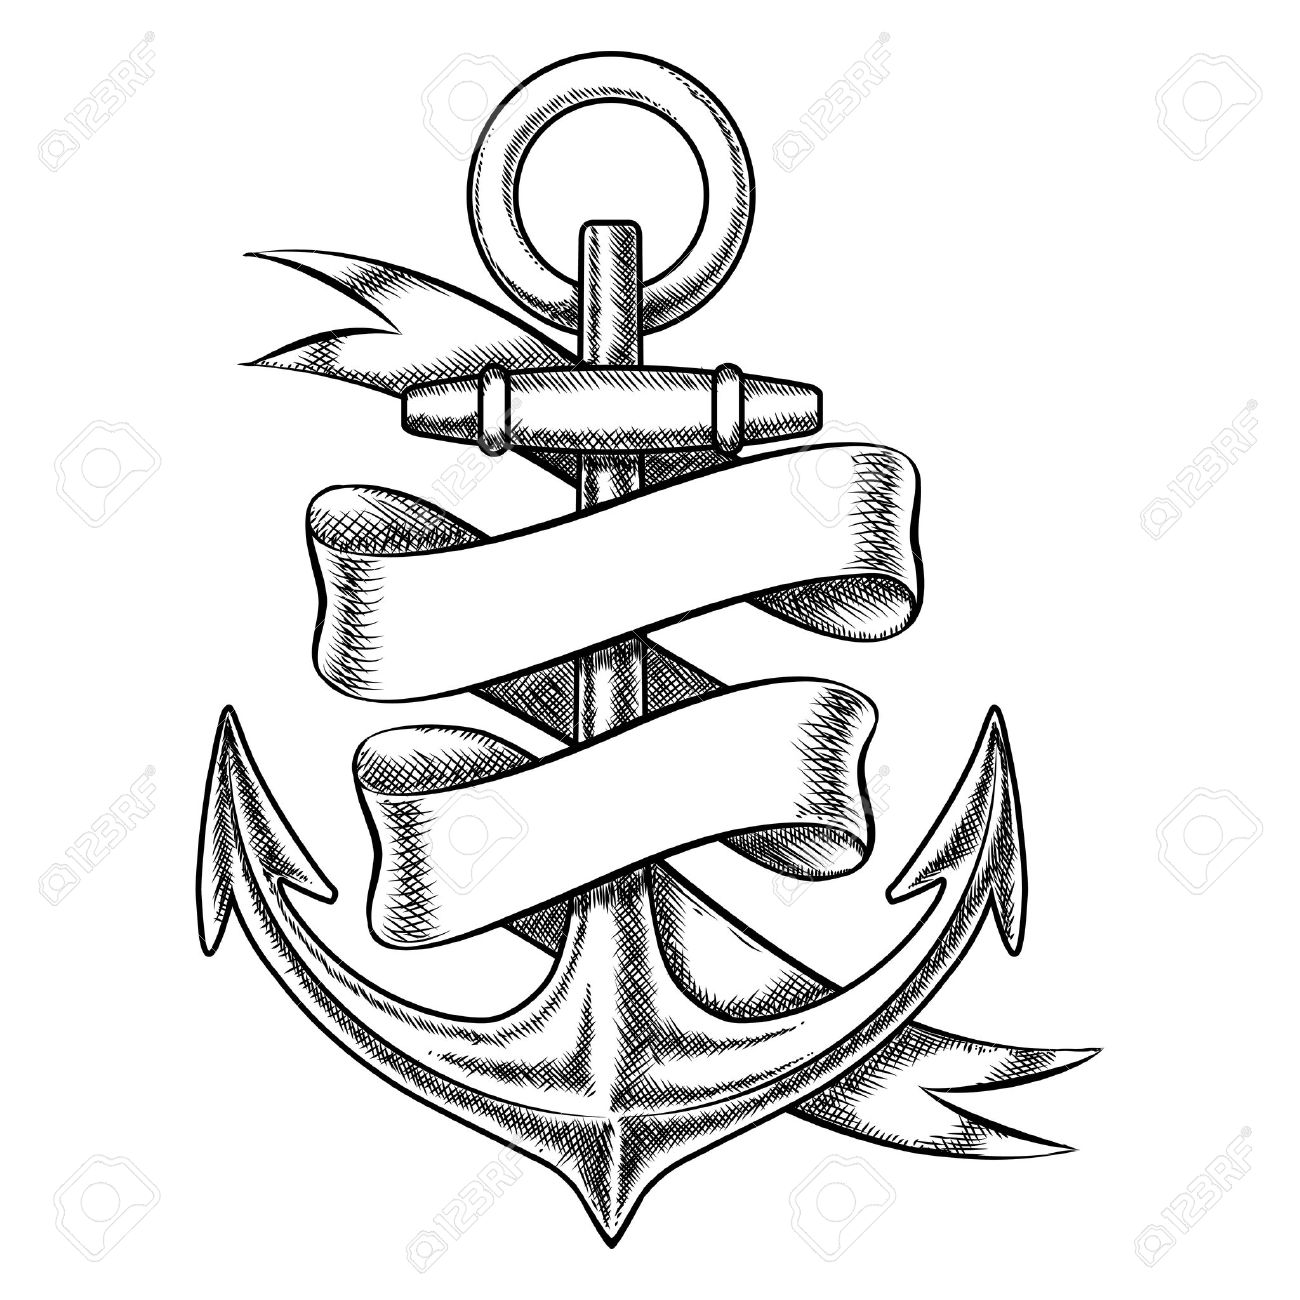 3281f2126 Vector - Vector hand drawn anchor sketch with blank ribbon. Nautical  isolated object, vintage marine tattoo illustration